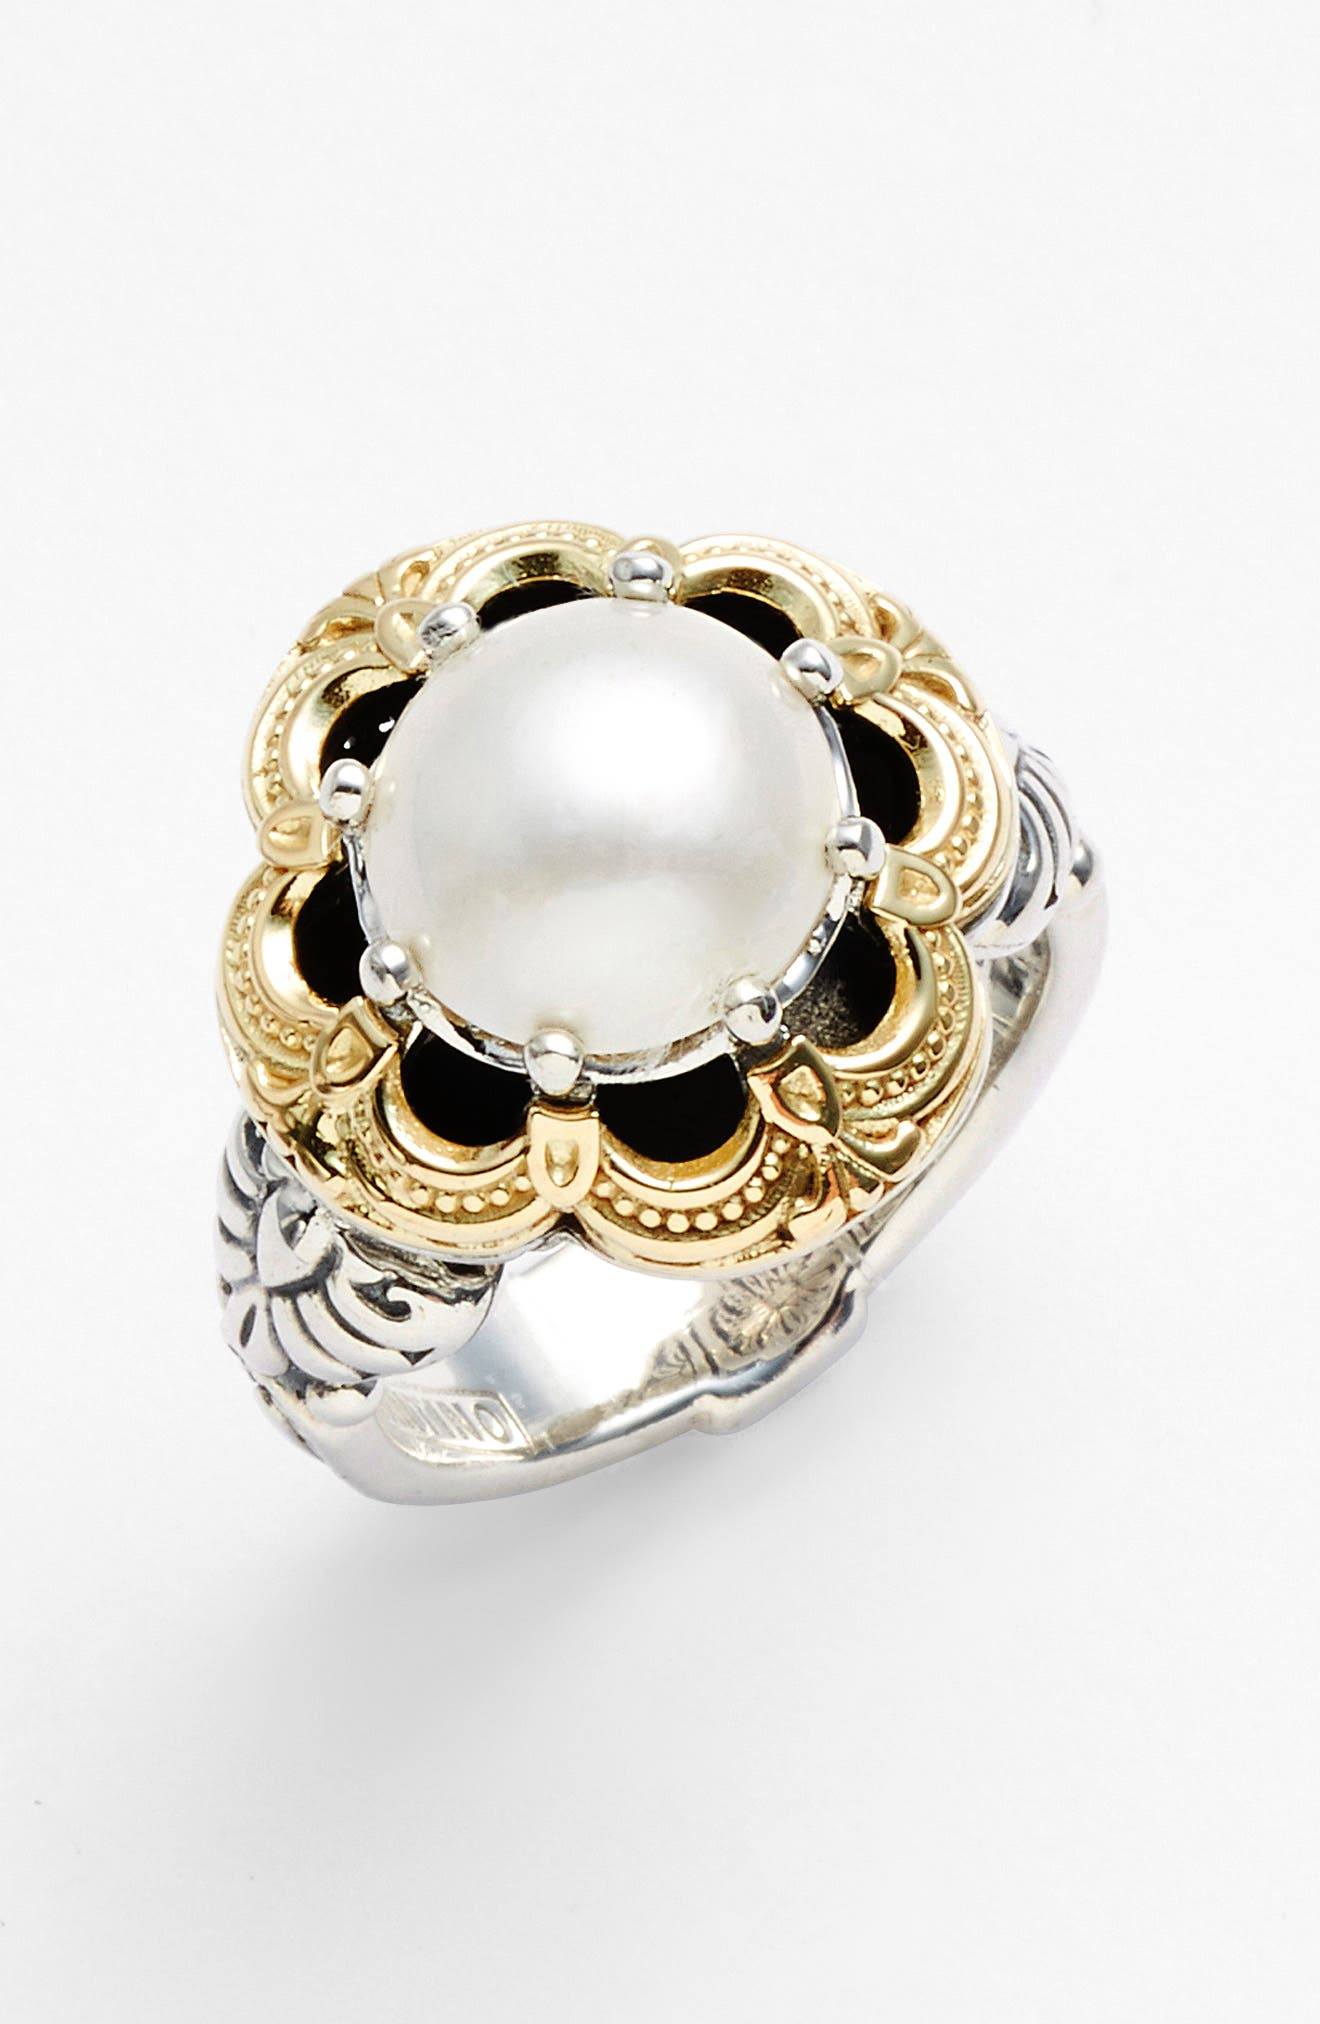 'Hermione' Semiprecious Stone Ring,                             Alternate thumbnail 3, color,                             SILVER/ GOLD